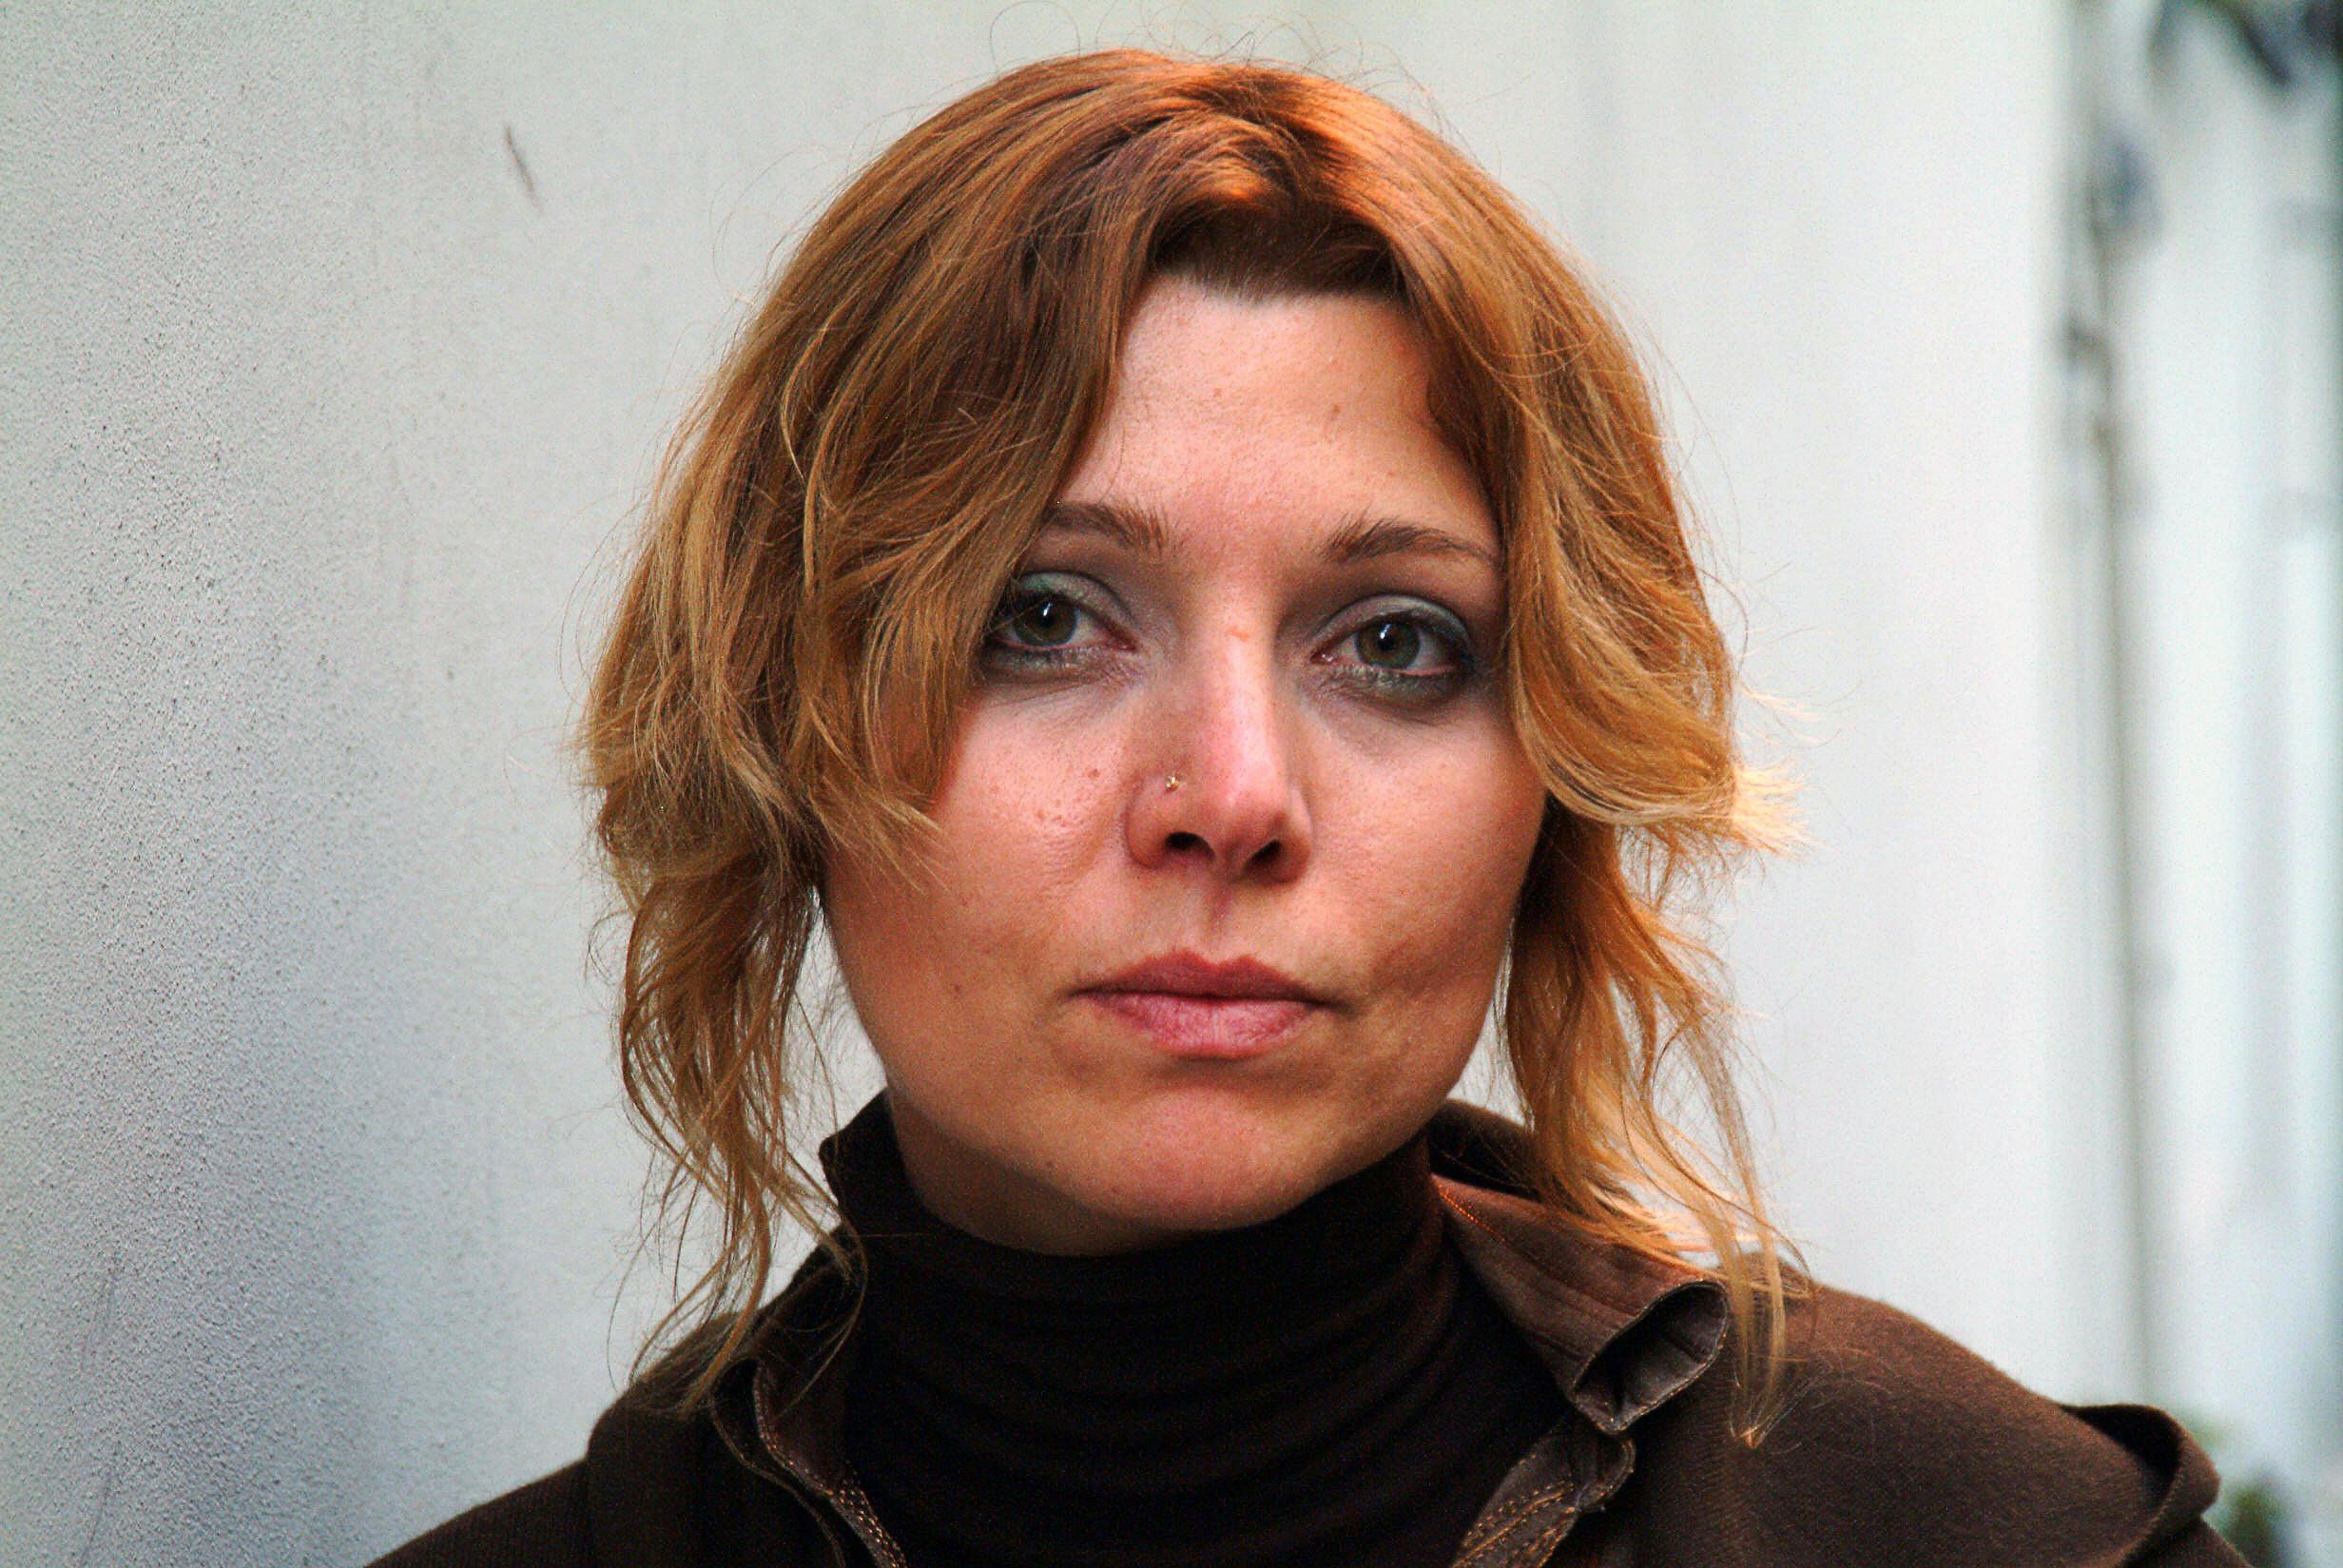 Istanbul, TURKEY:  (FILES) An undated photo taken in Istanbul shows celebrated Turkish novelist Elif Shafak, 35.  A Turkish court 21 September 2006 acquitted prize-winning author Elif Shafak in the opening hearing of her trial for insulting Turks in her book on the massacres of Armenians during World War I, the Anatolia news agency reported.  AFP PHOTO / STR  (Photo credit should read STR/AFP/Getty Images)